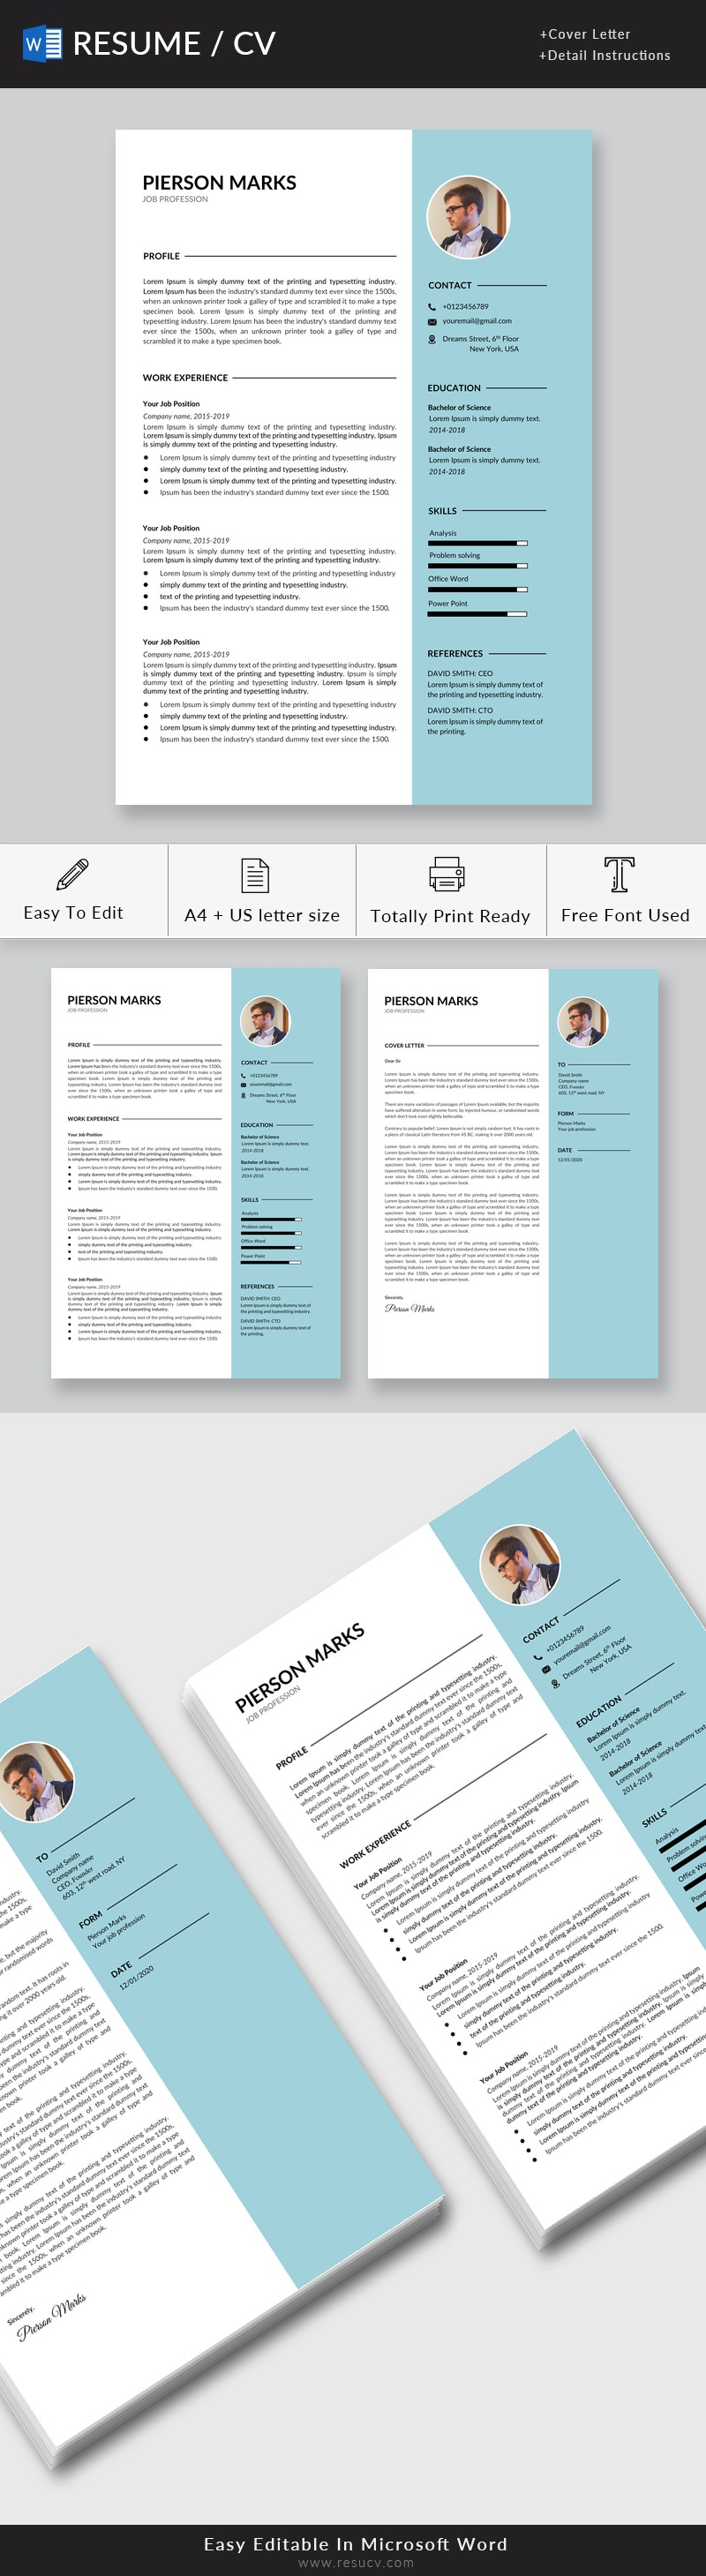 Professional Resume Template for Word, Resume/CV, Cover Letter